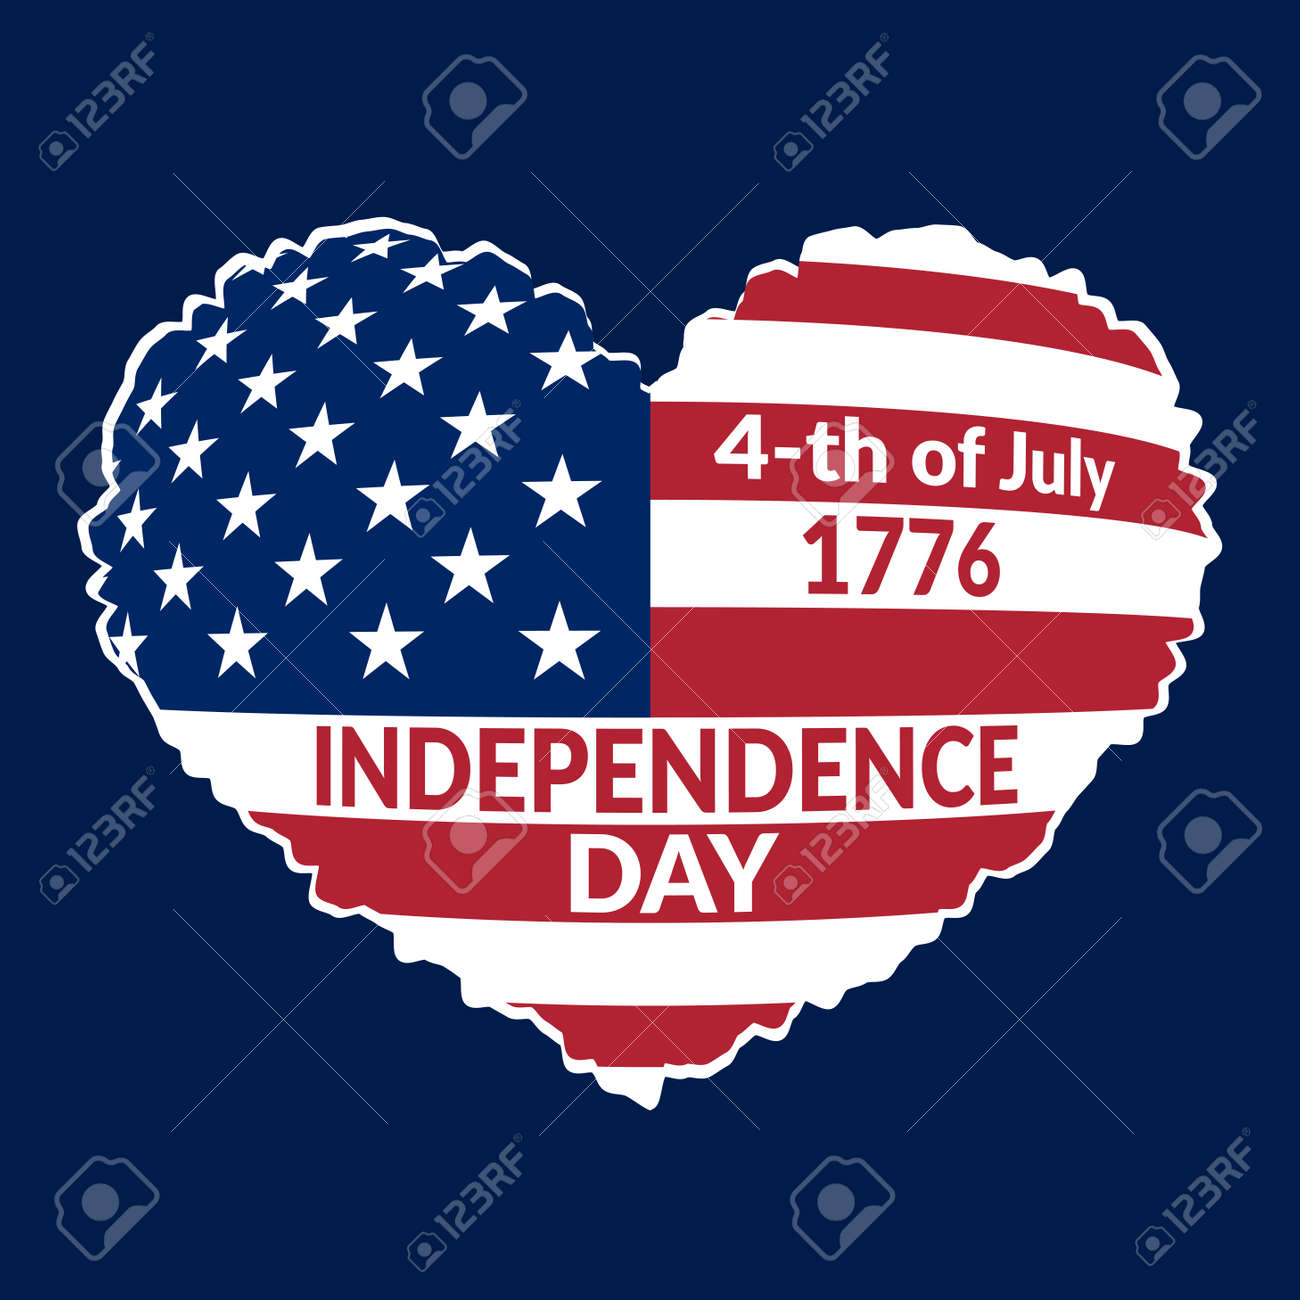 American Flag As Heart Shaped Symbol For 4th Of July Independence